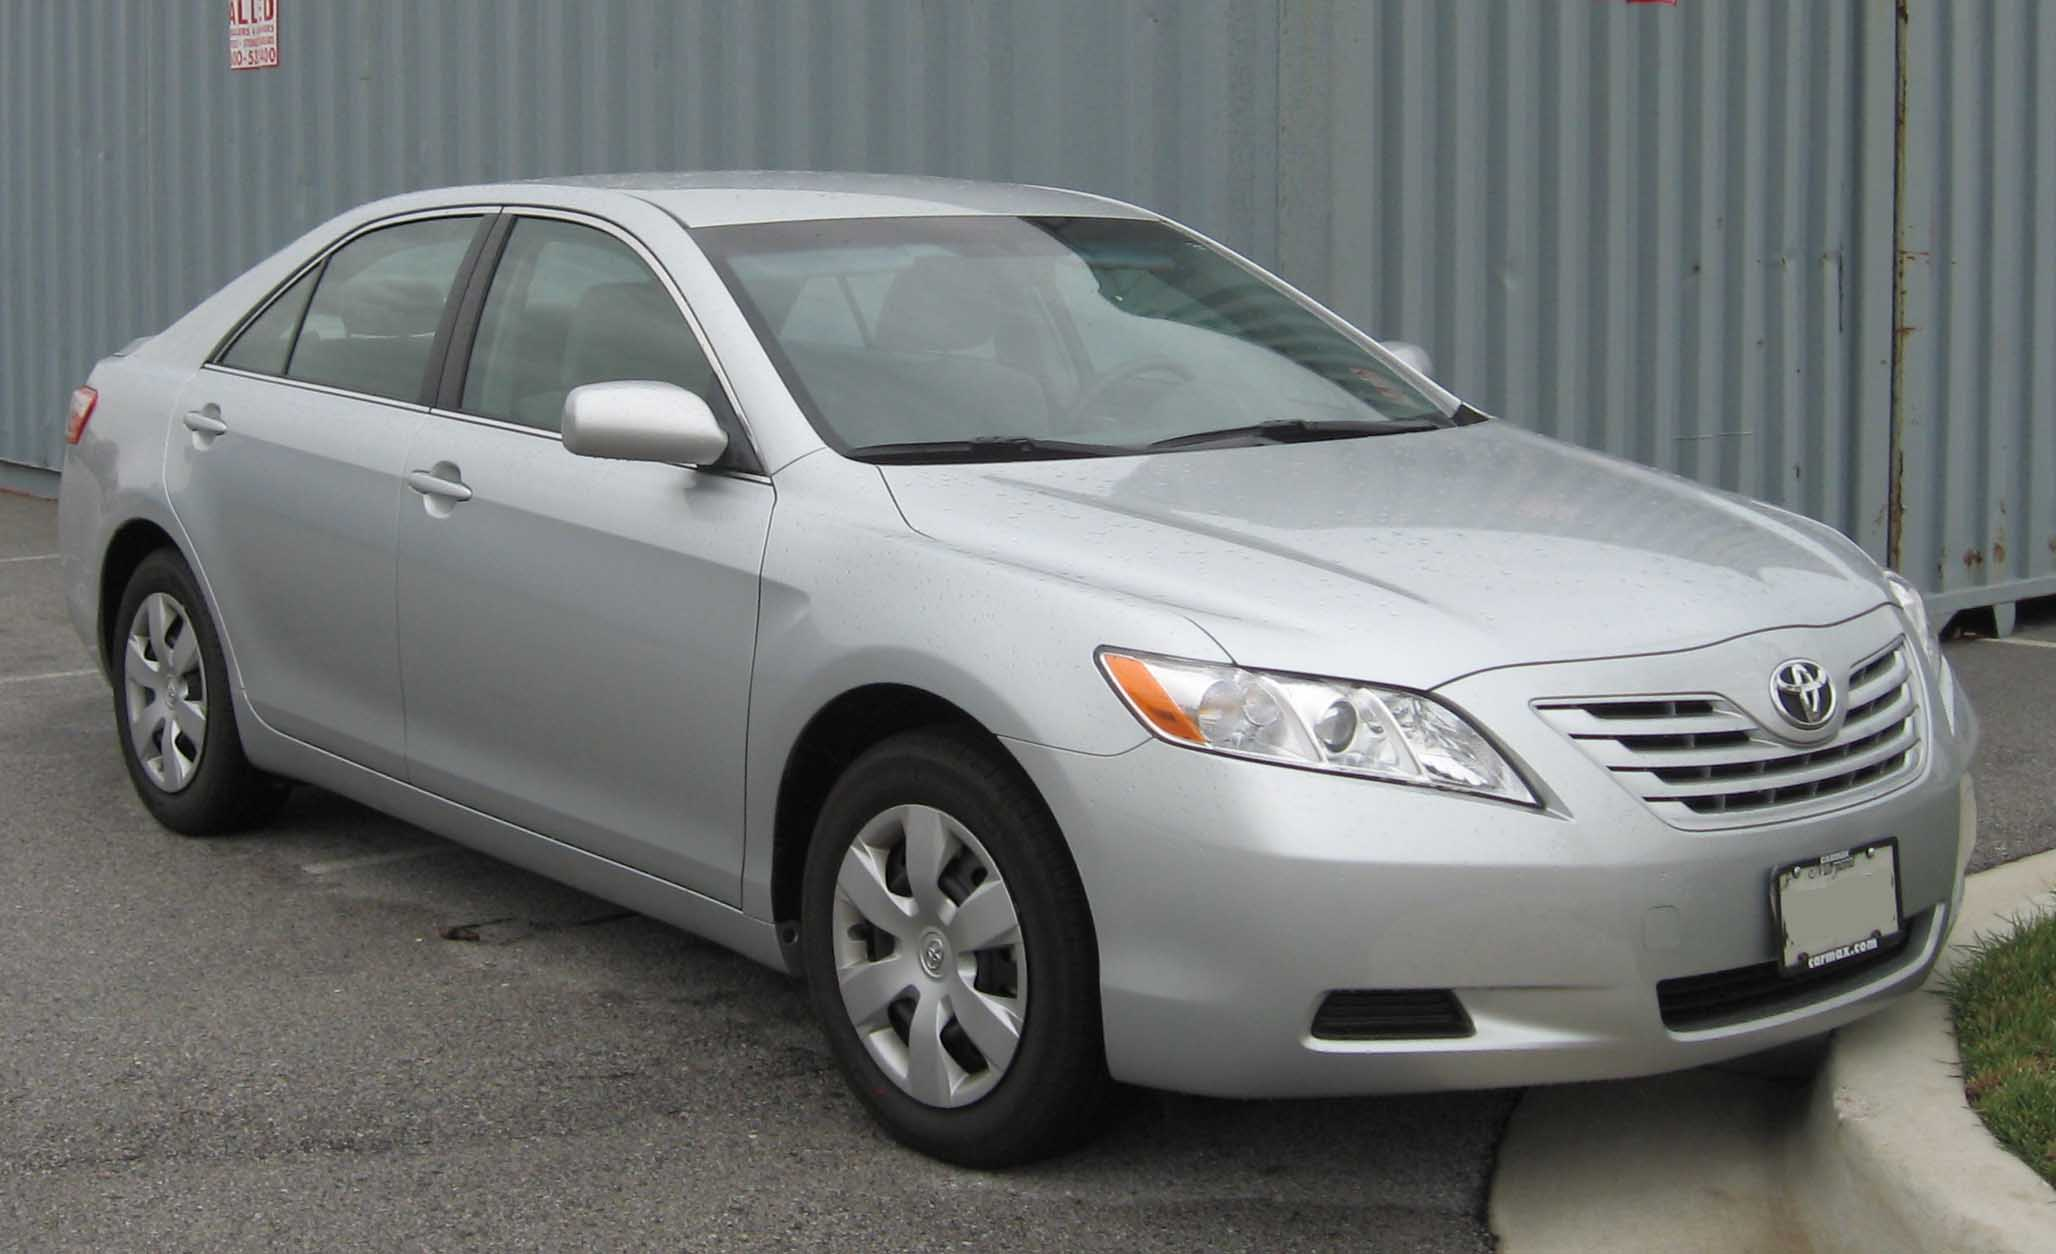 2007 Toyota Camry Photos Informations Articles Fuel Filter Location 3